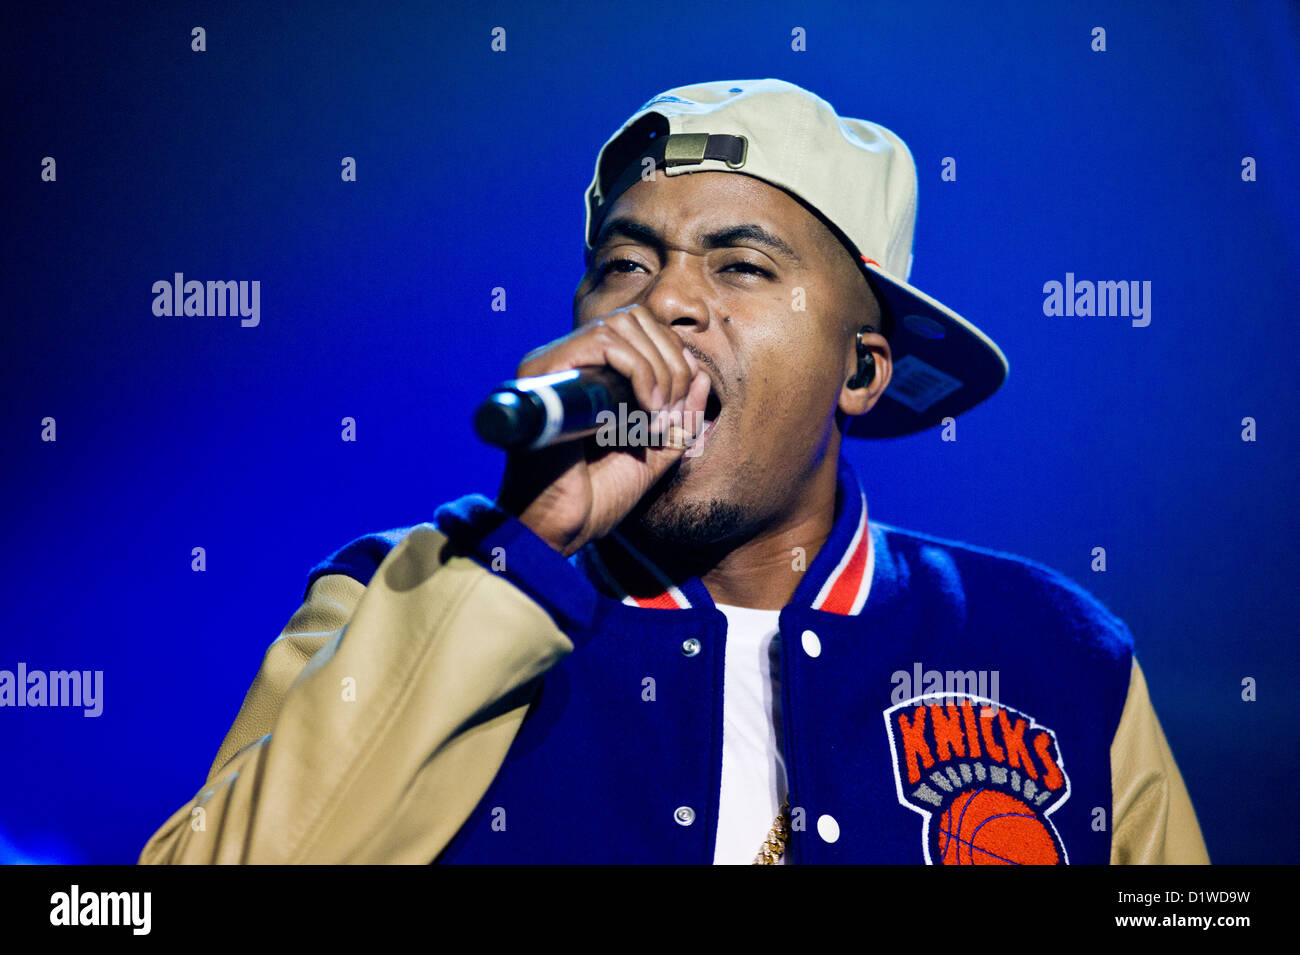 Nas performing in Chicago on November 14, 2012. MAX HERMAN/ALAMY - Stock Image